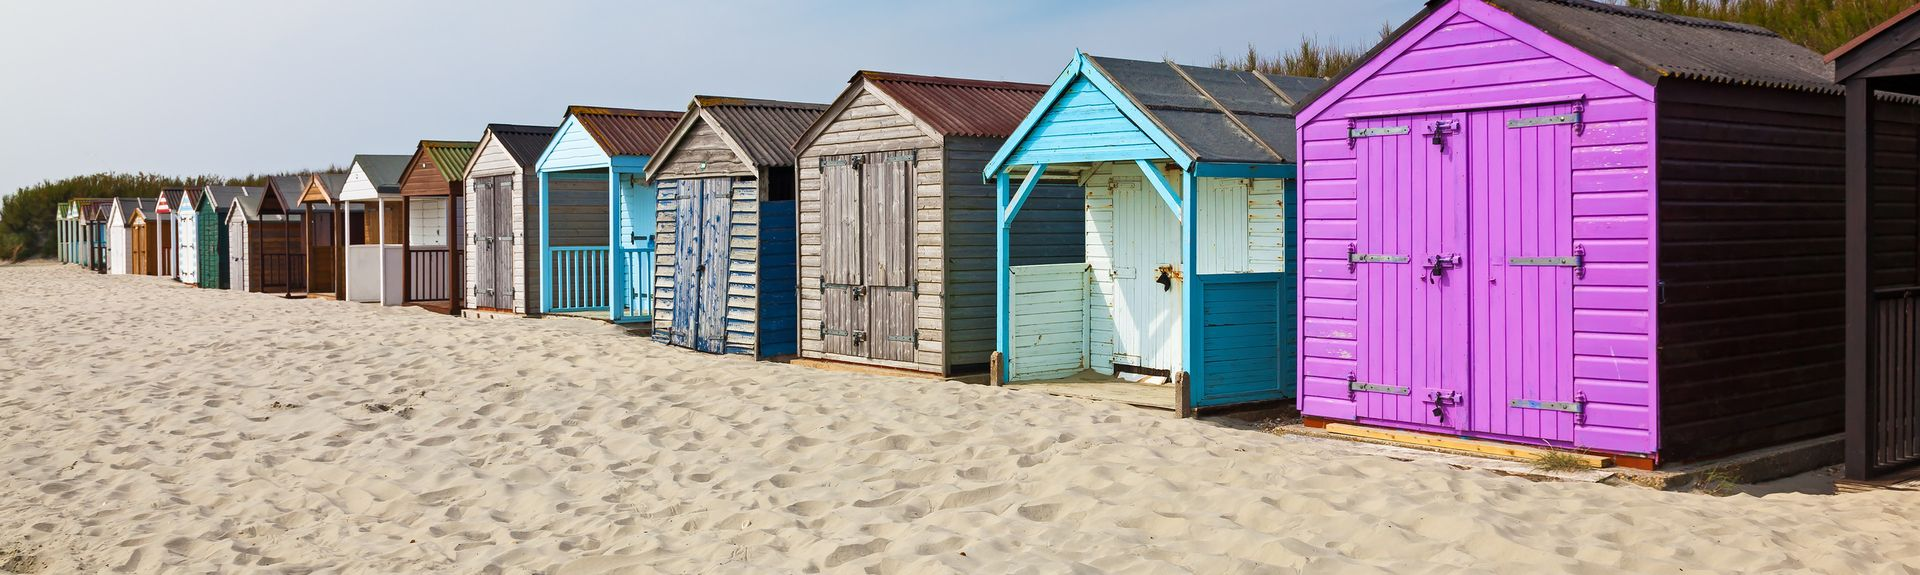 West Wittering, Chichester, England, United Kingdom